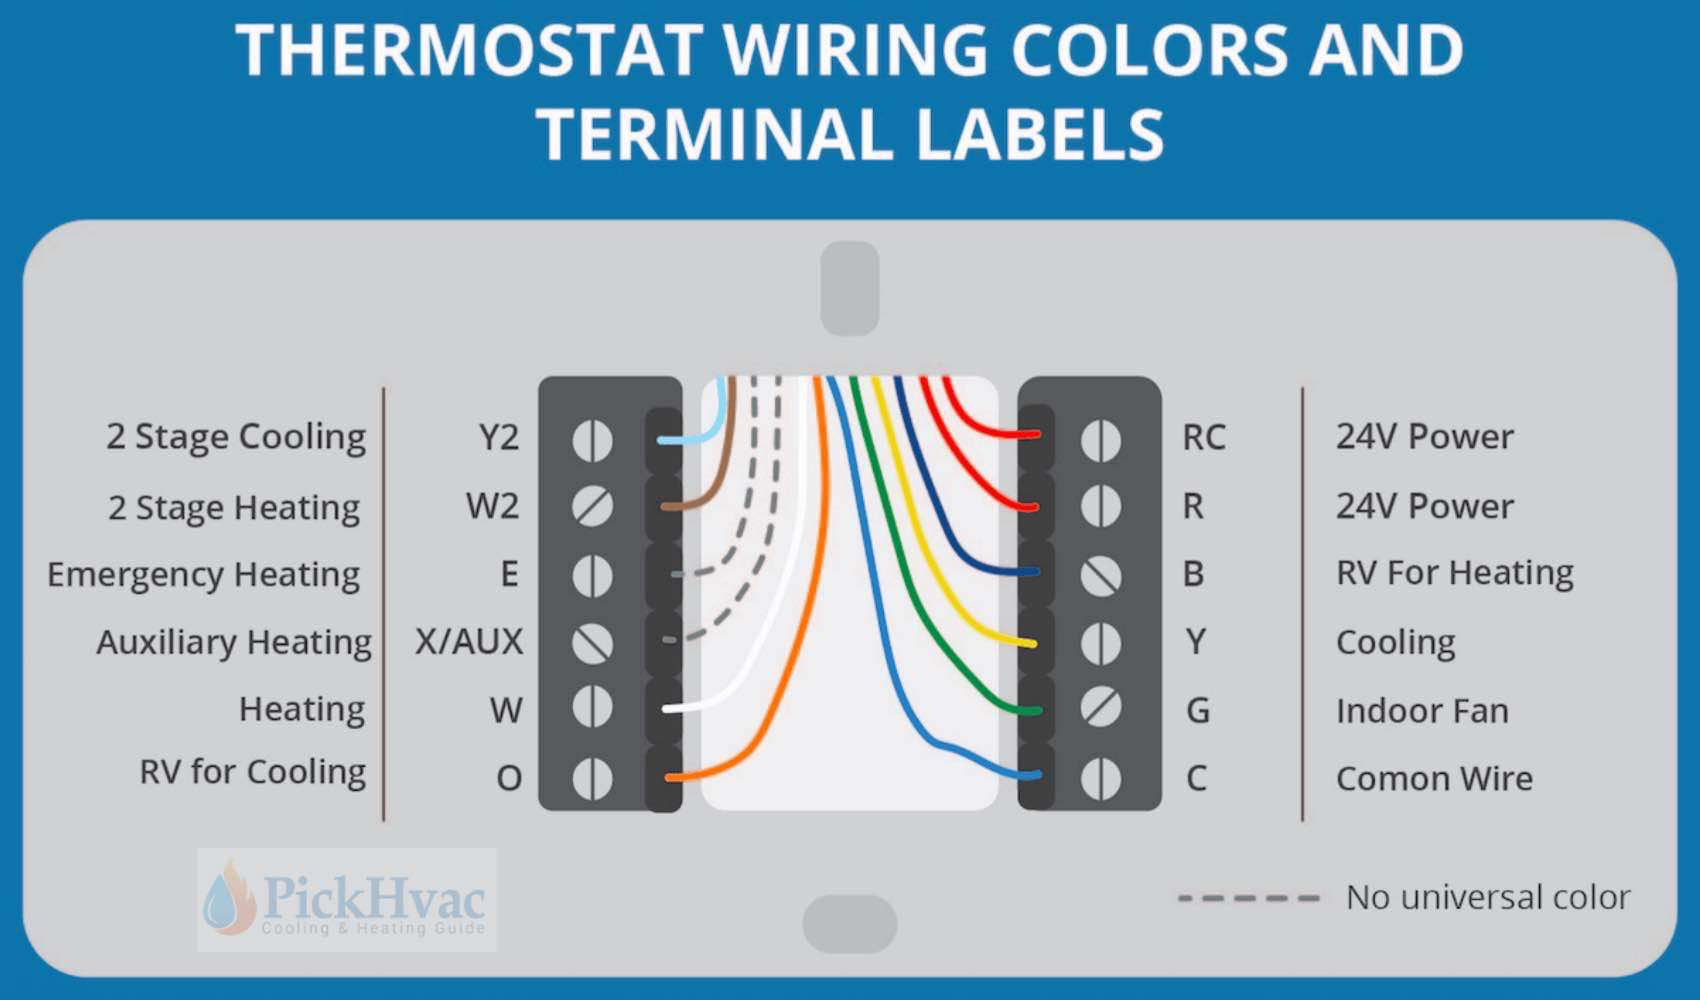 In-Depth Thermostat Wiring Guide For Homeowners - Nest Thermostat Wiring Diagram Air Conditioner 3 Wire